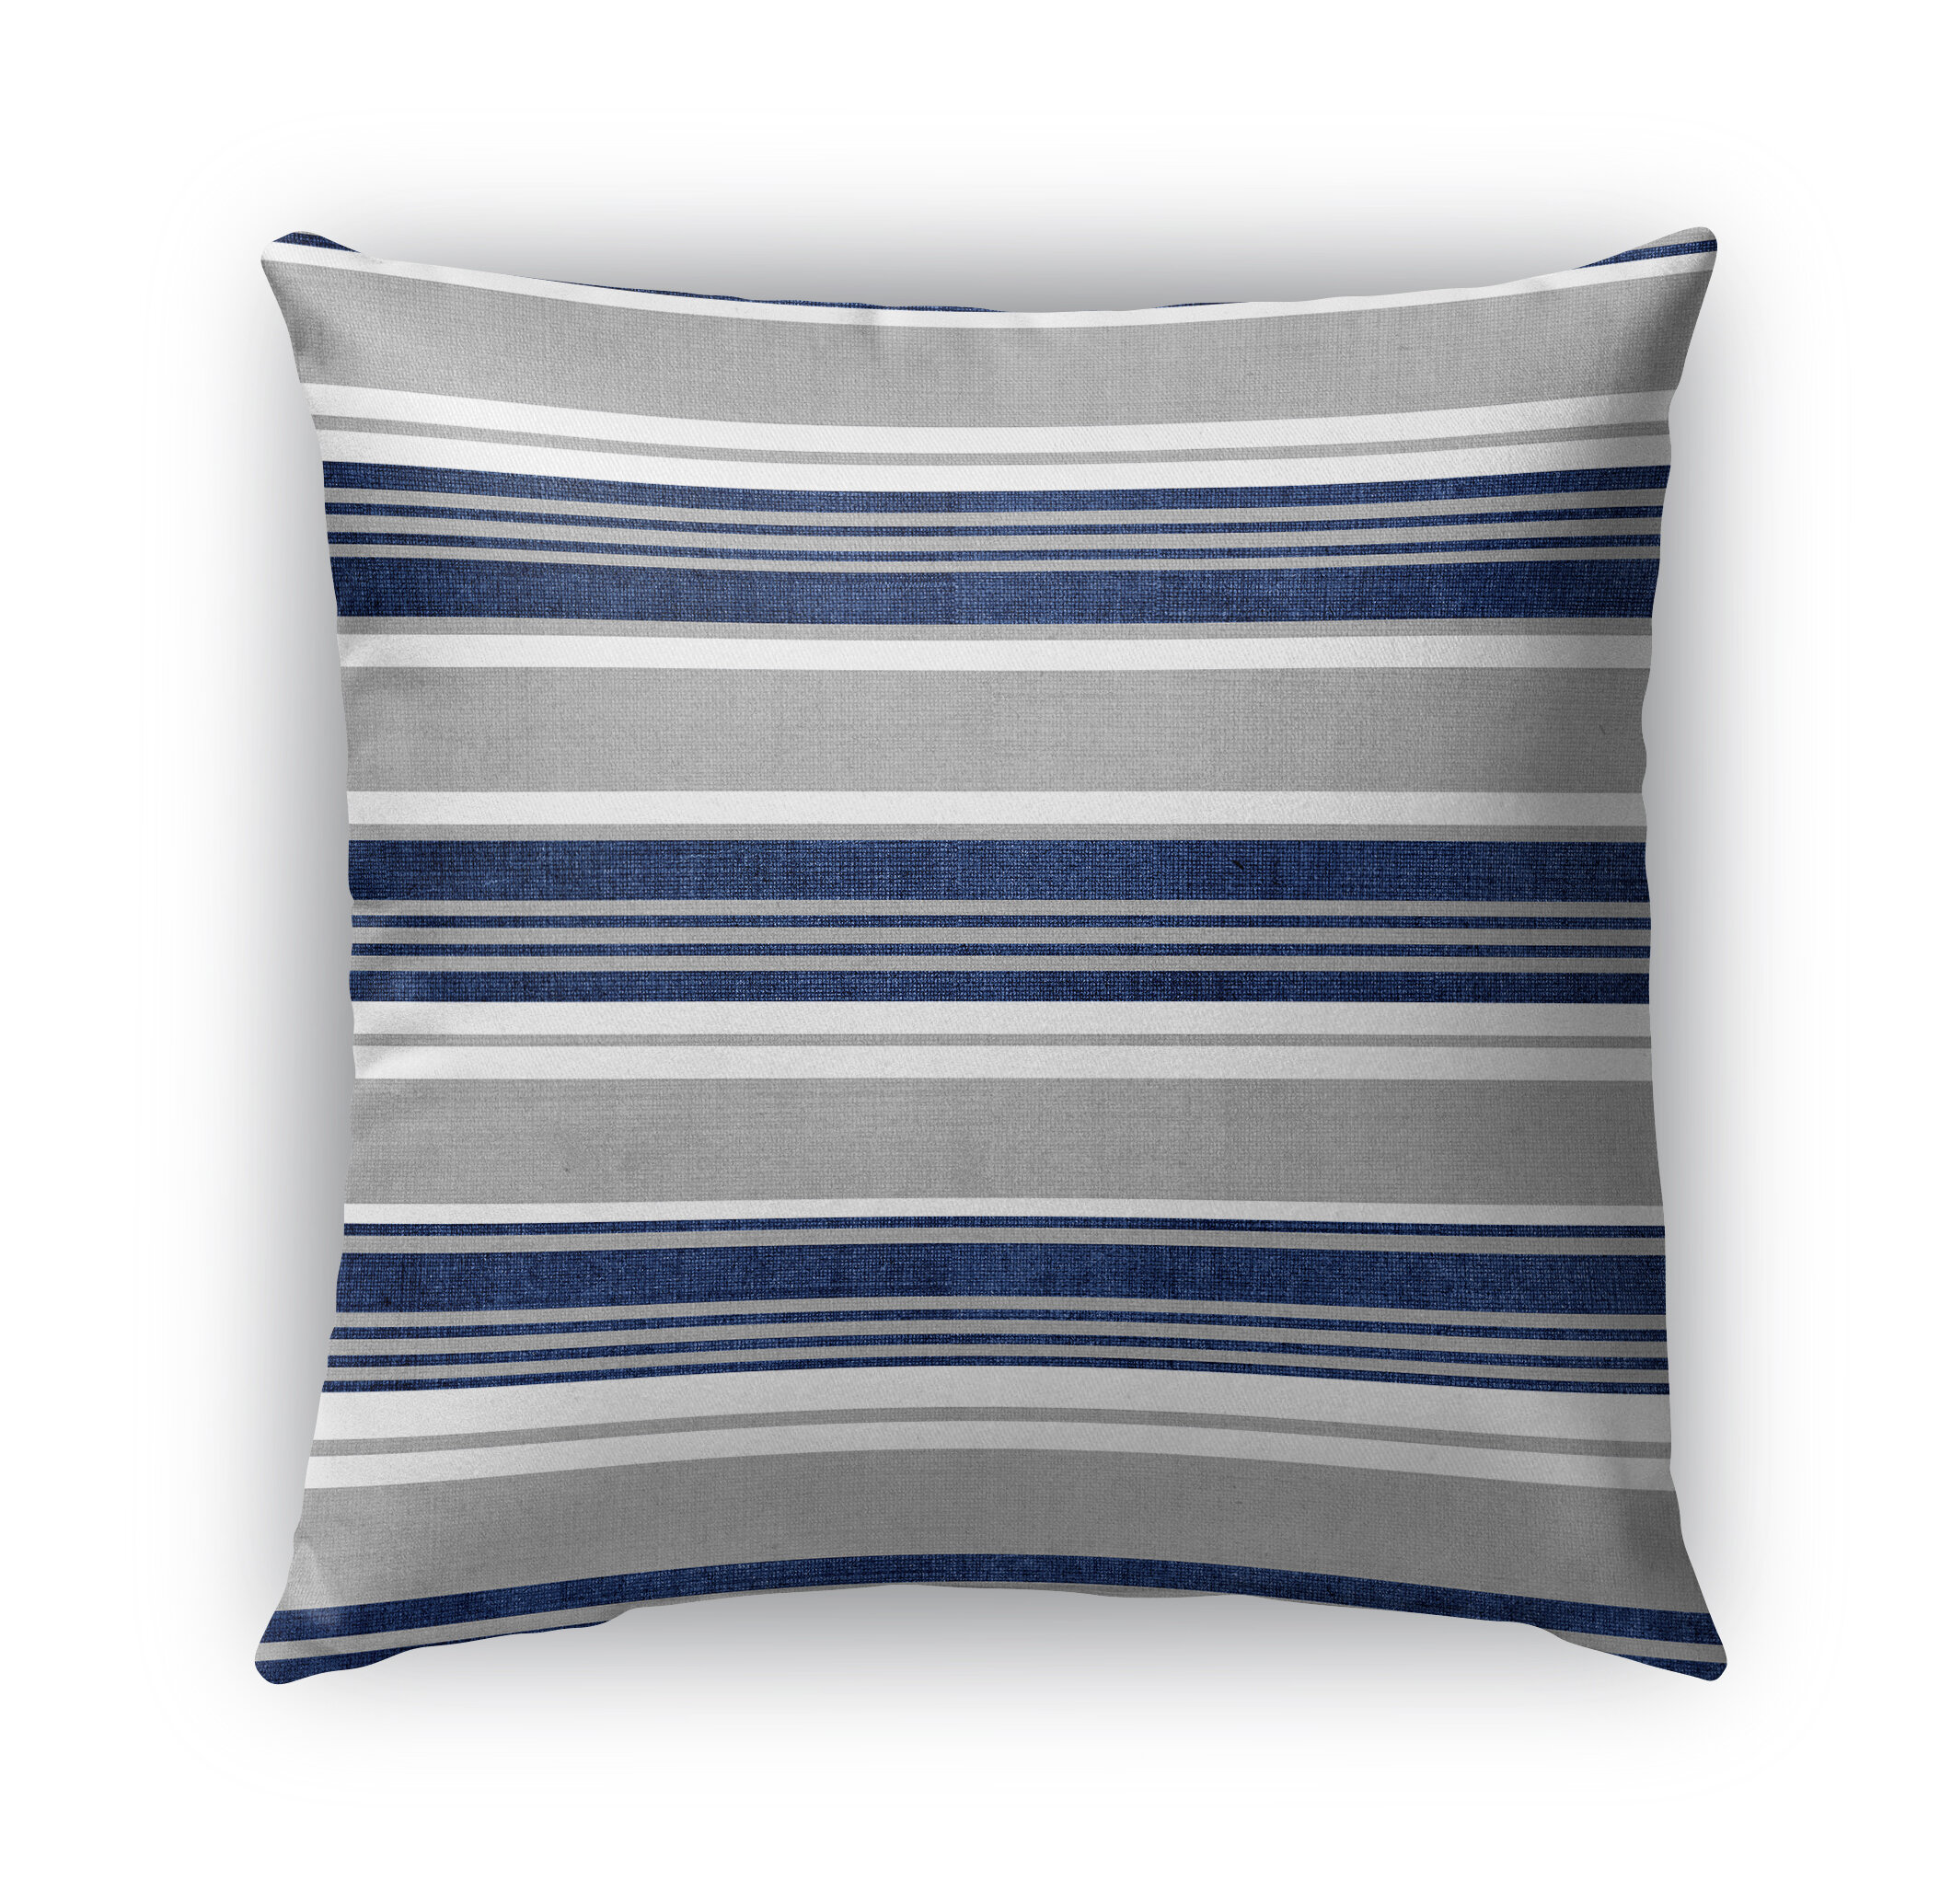 Eco Fill Striped Outdoor Pillows You Ll Love In 2021 Wayfair